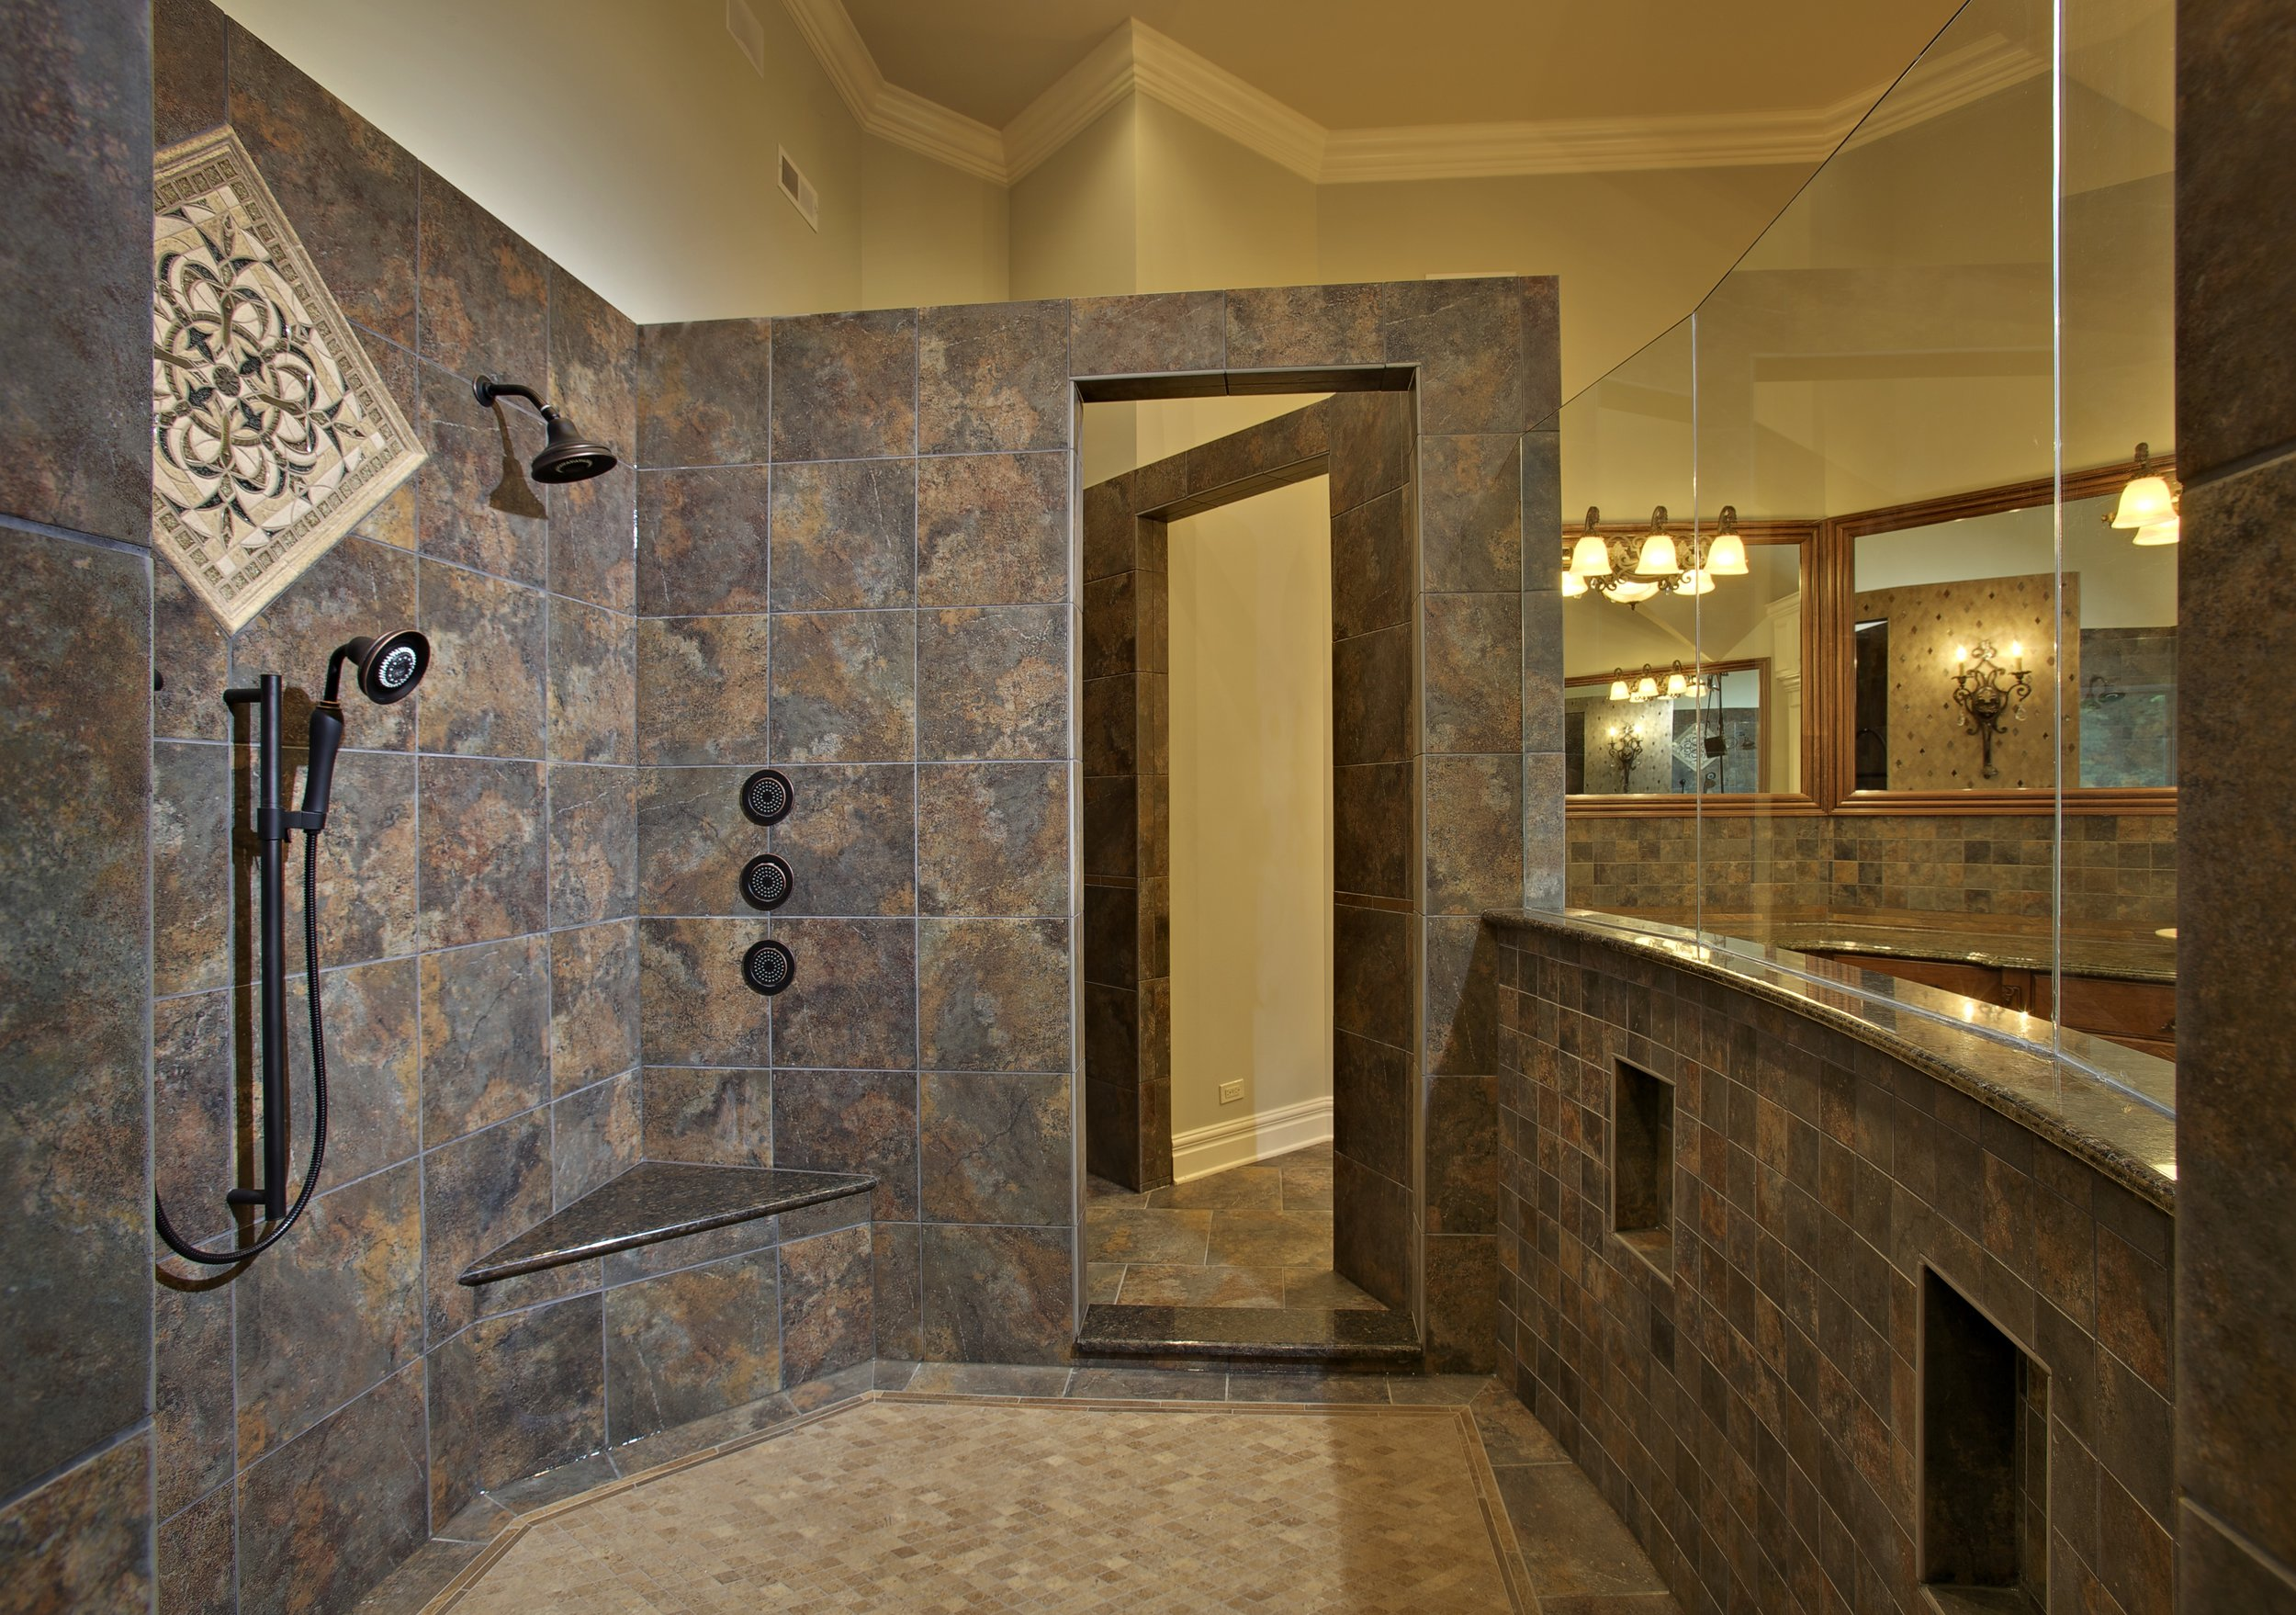 LARGE WALK IN SHOWER ST. CHARLES IL.